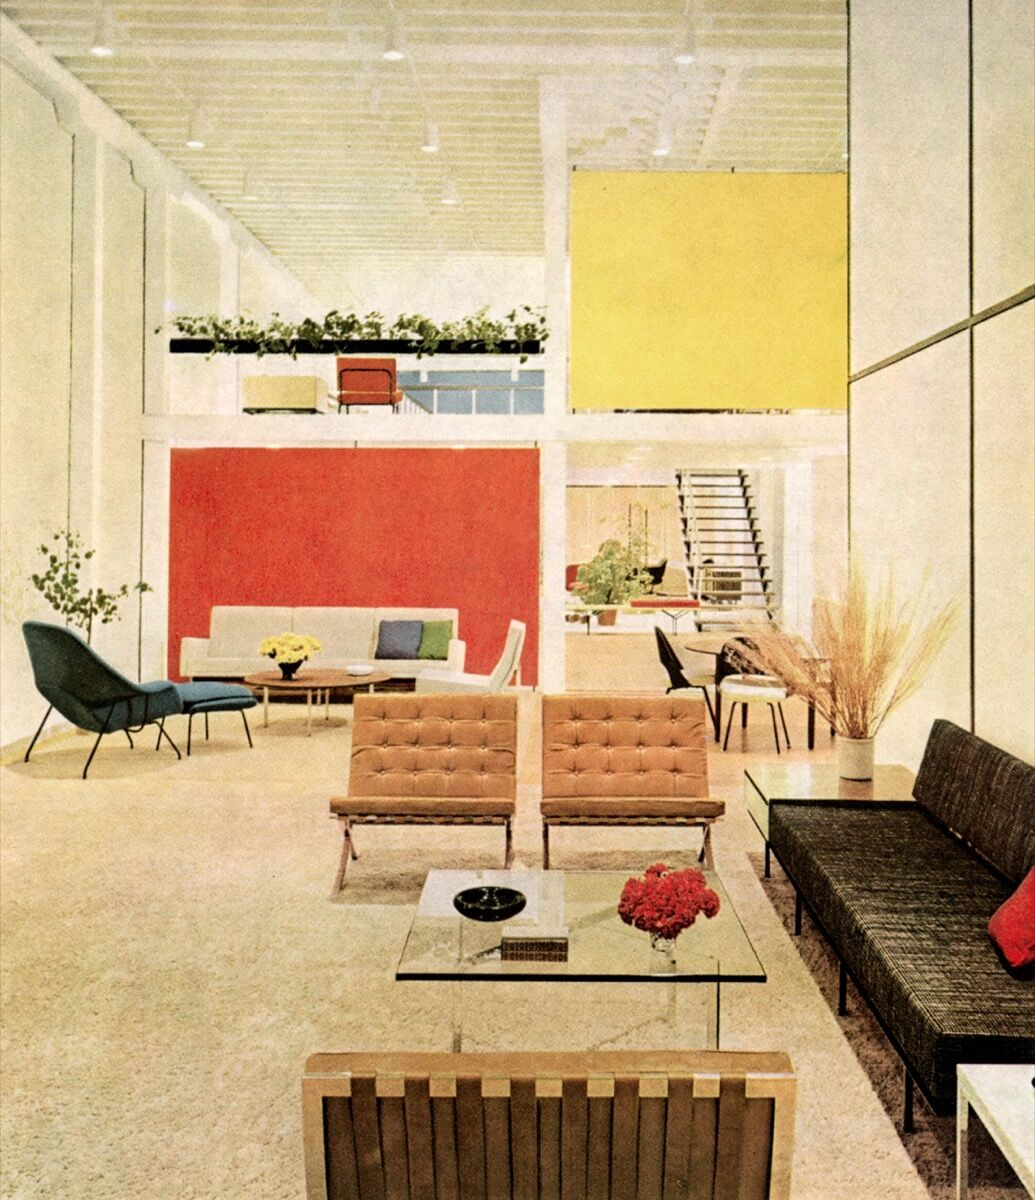 7 Things to Know about Mid-Century Design Pioneer Florence Knoll - Artsy